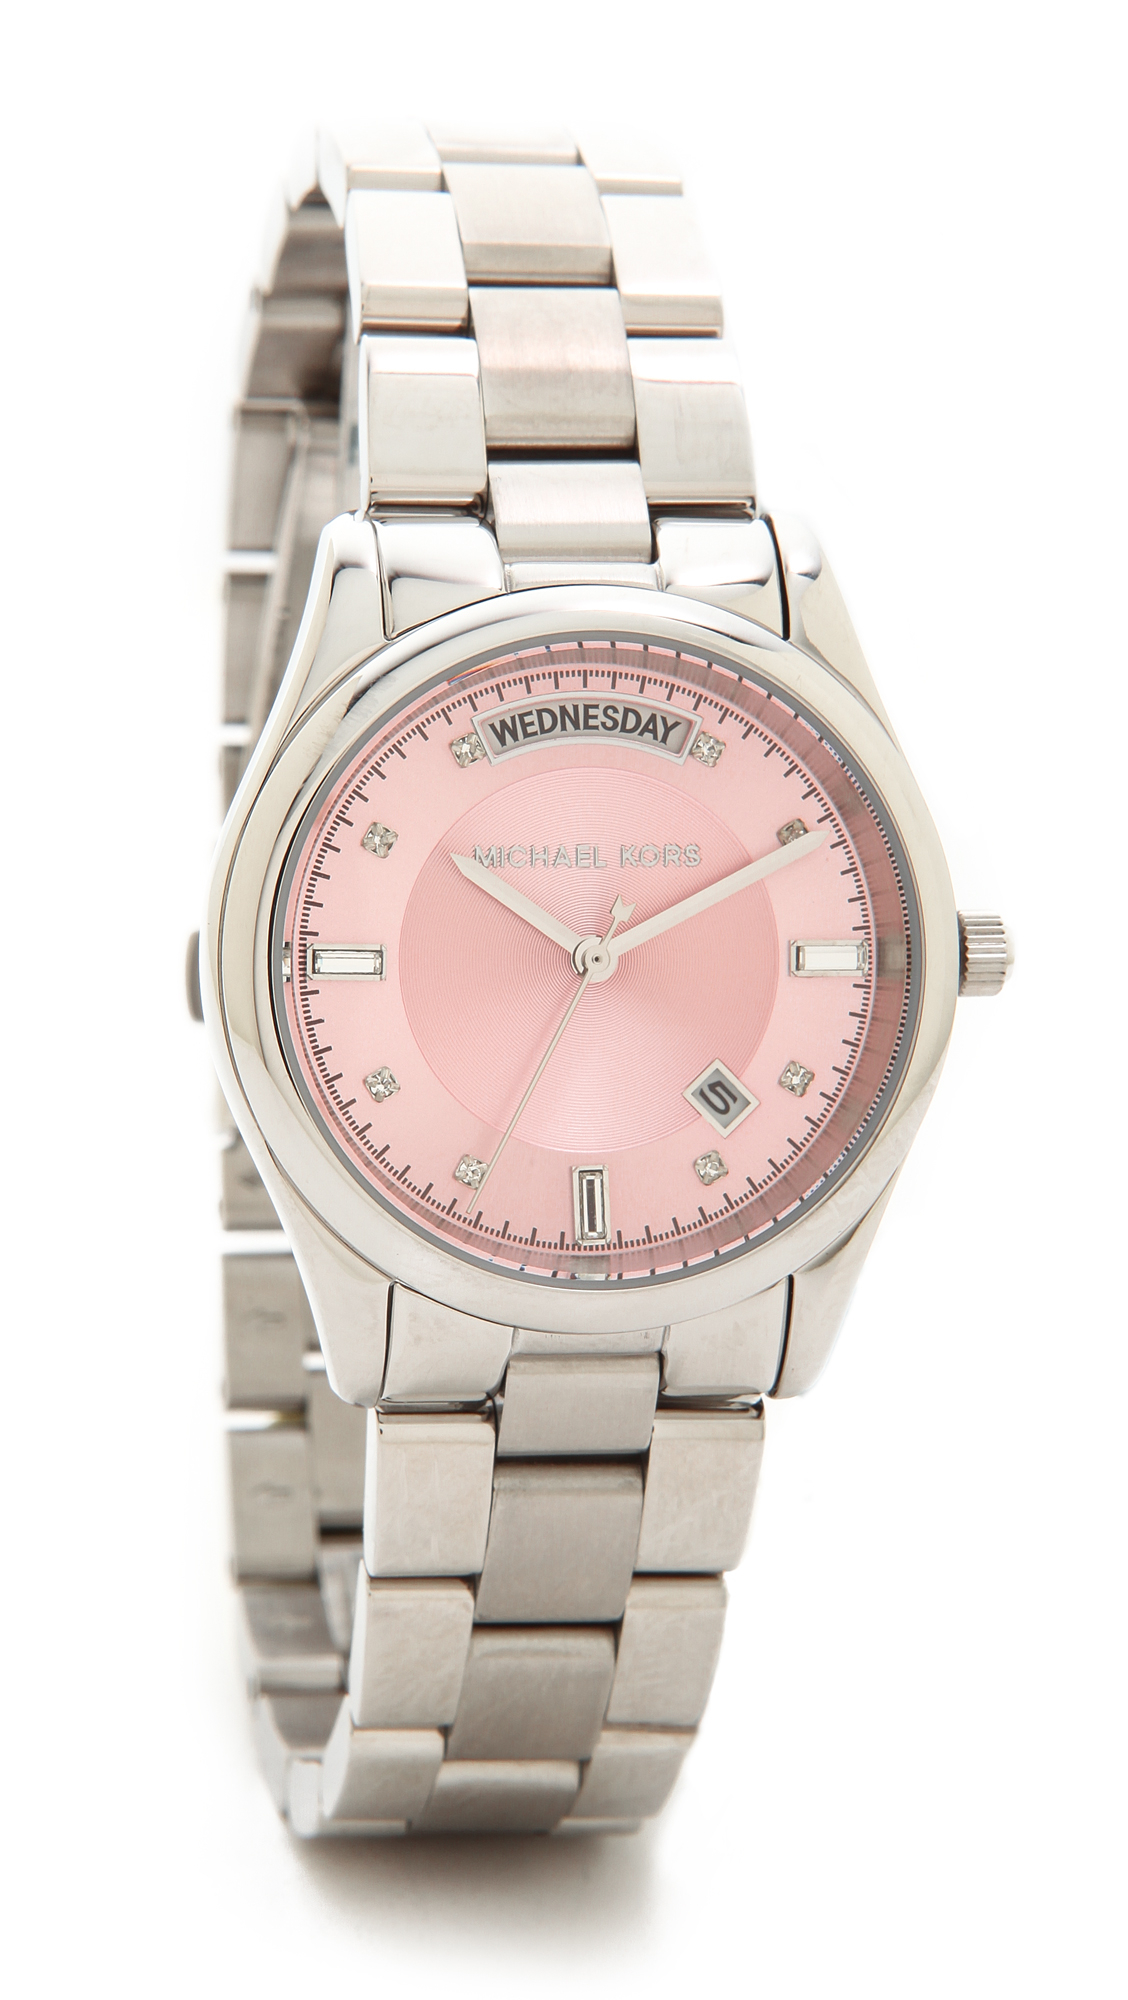 455e75b808ae Michael Kors Colette Watch - Icy Pink in Metallic - Lyst